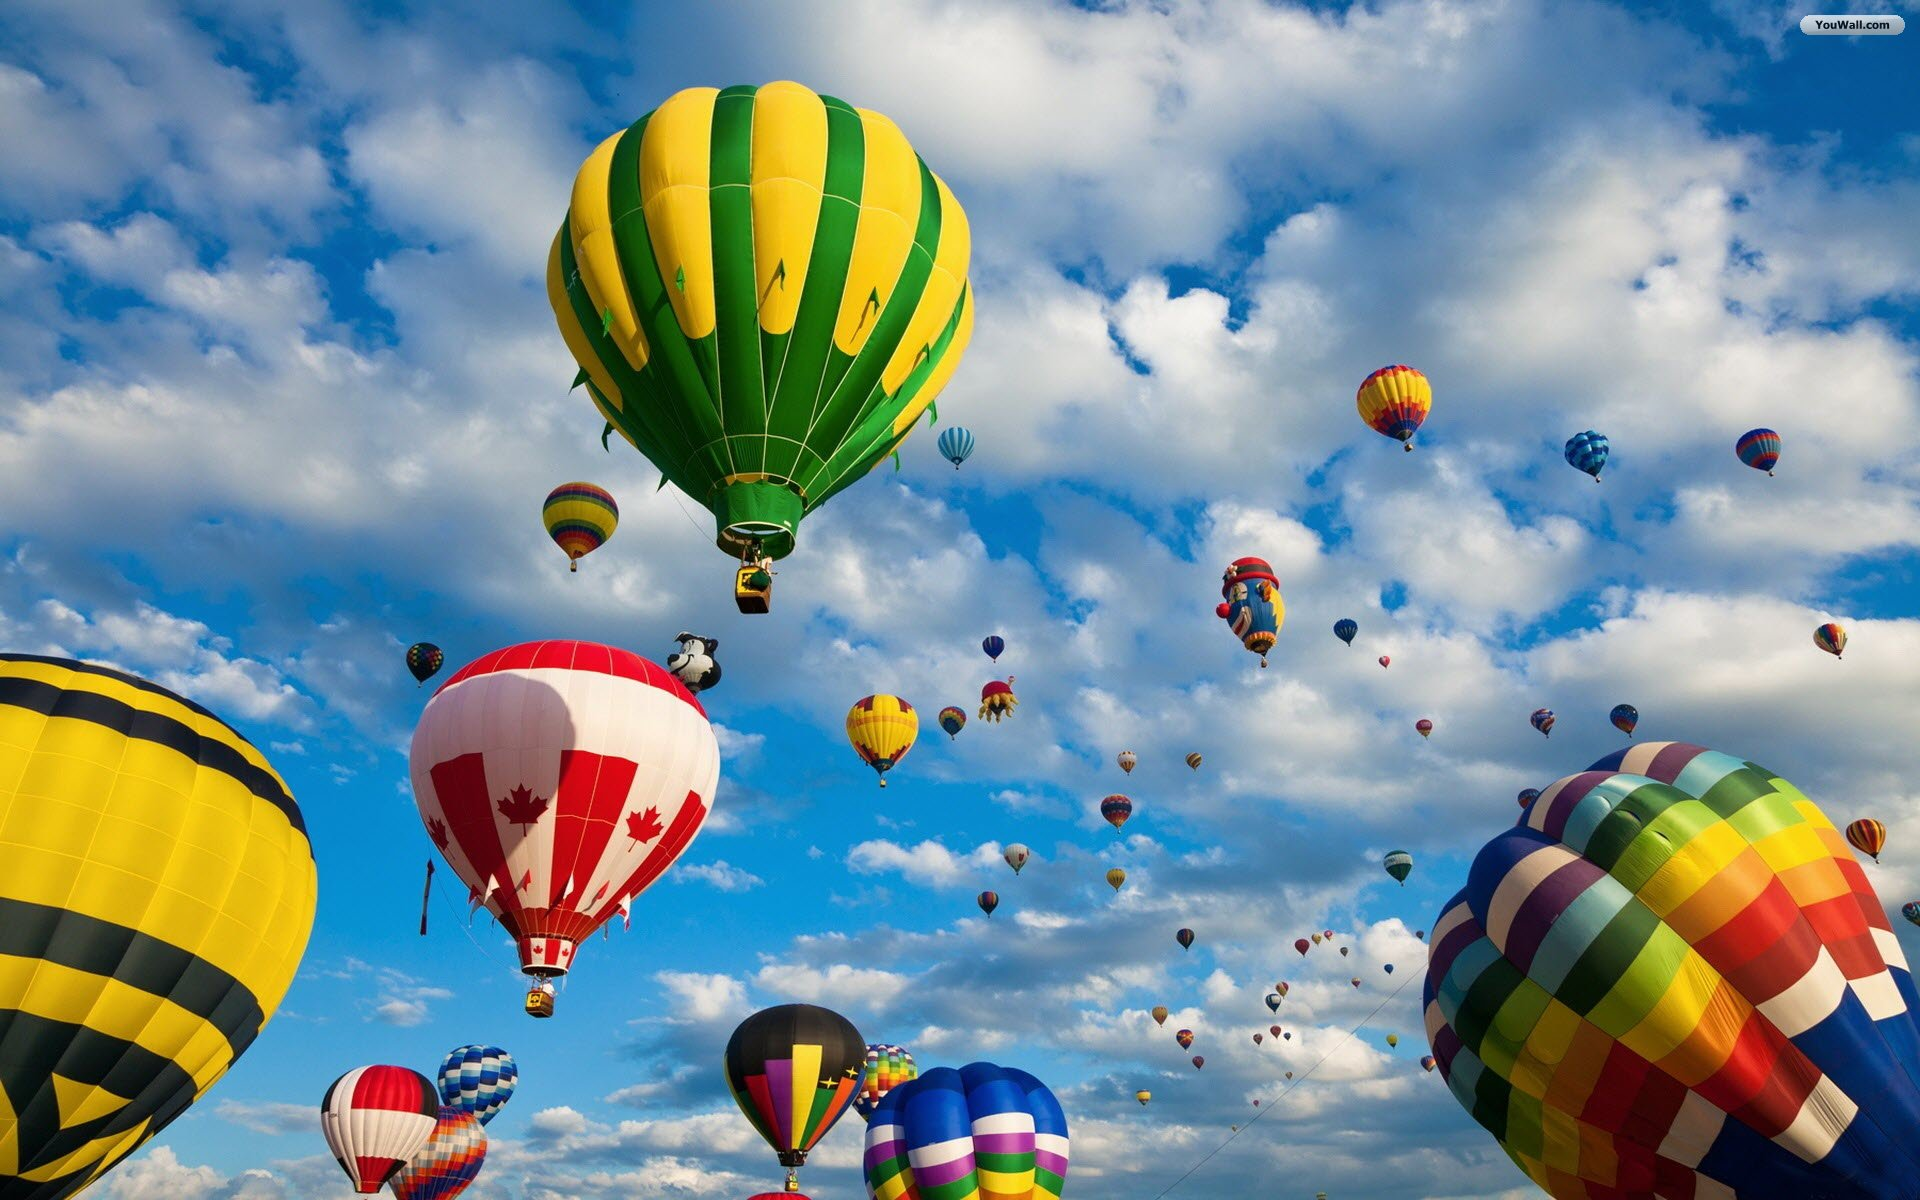 Free Download Hot Air Balloons Wallpaper Wallpaperwallpapersfree